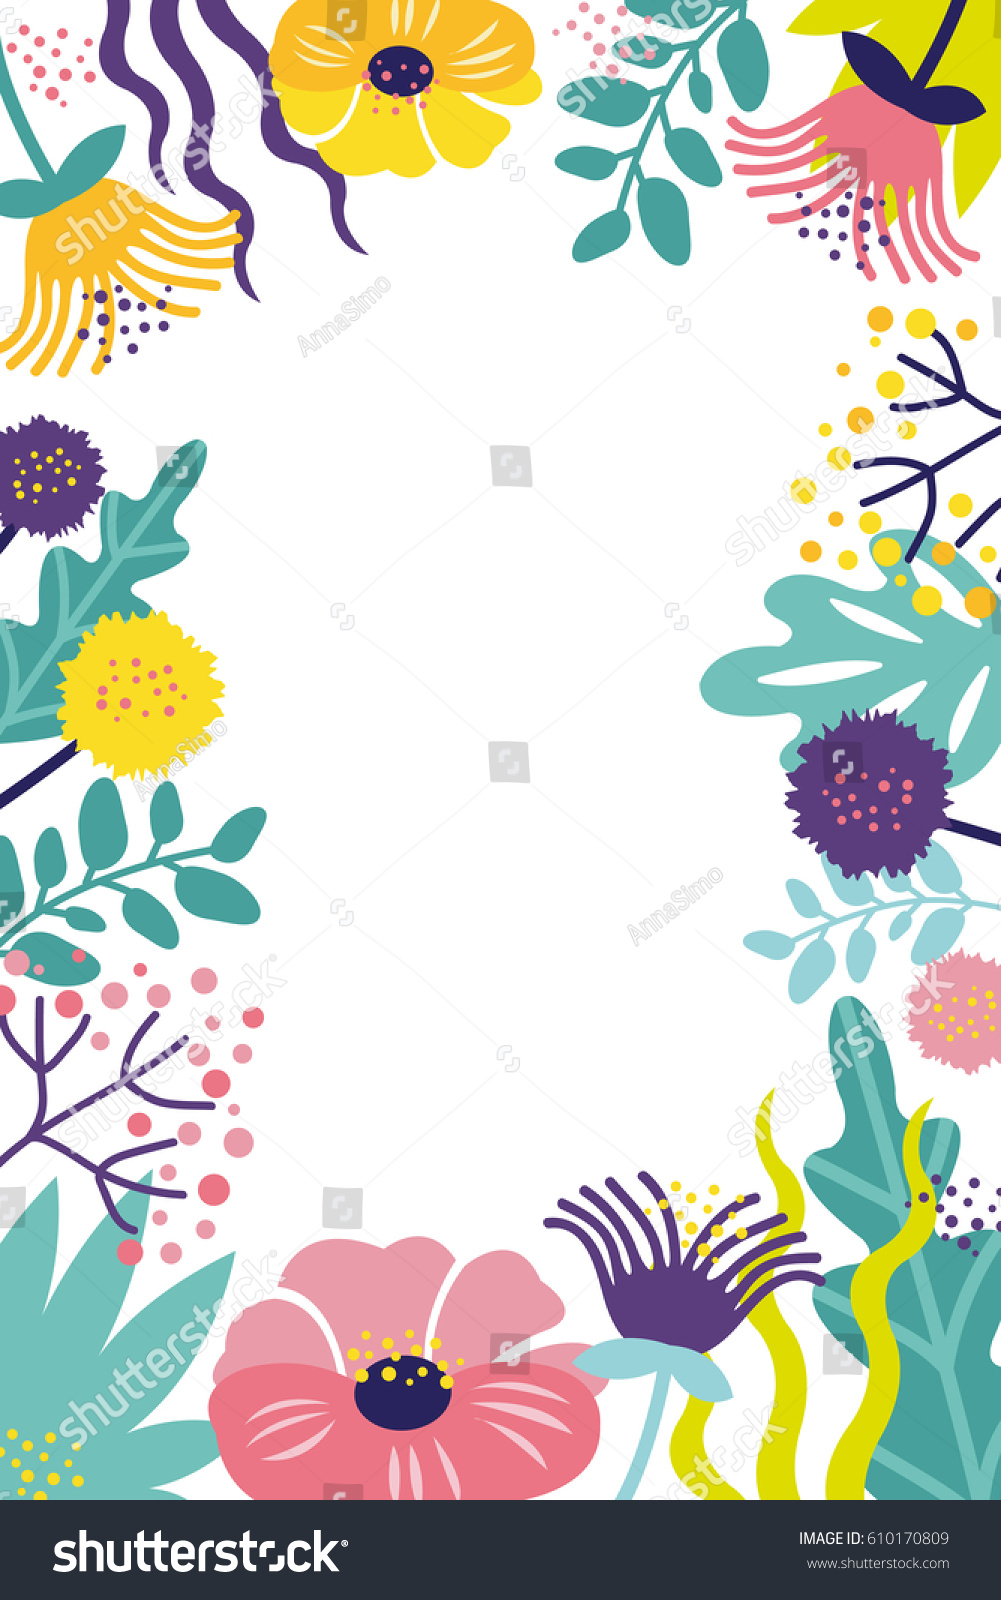 Fantasy Flower Frame Template Card Poster Stock Photo (Photo, Vector ...